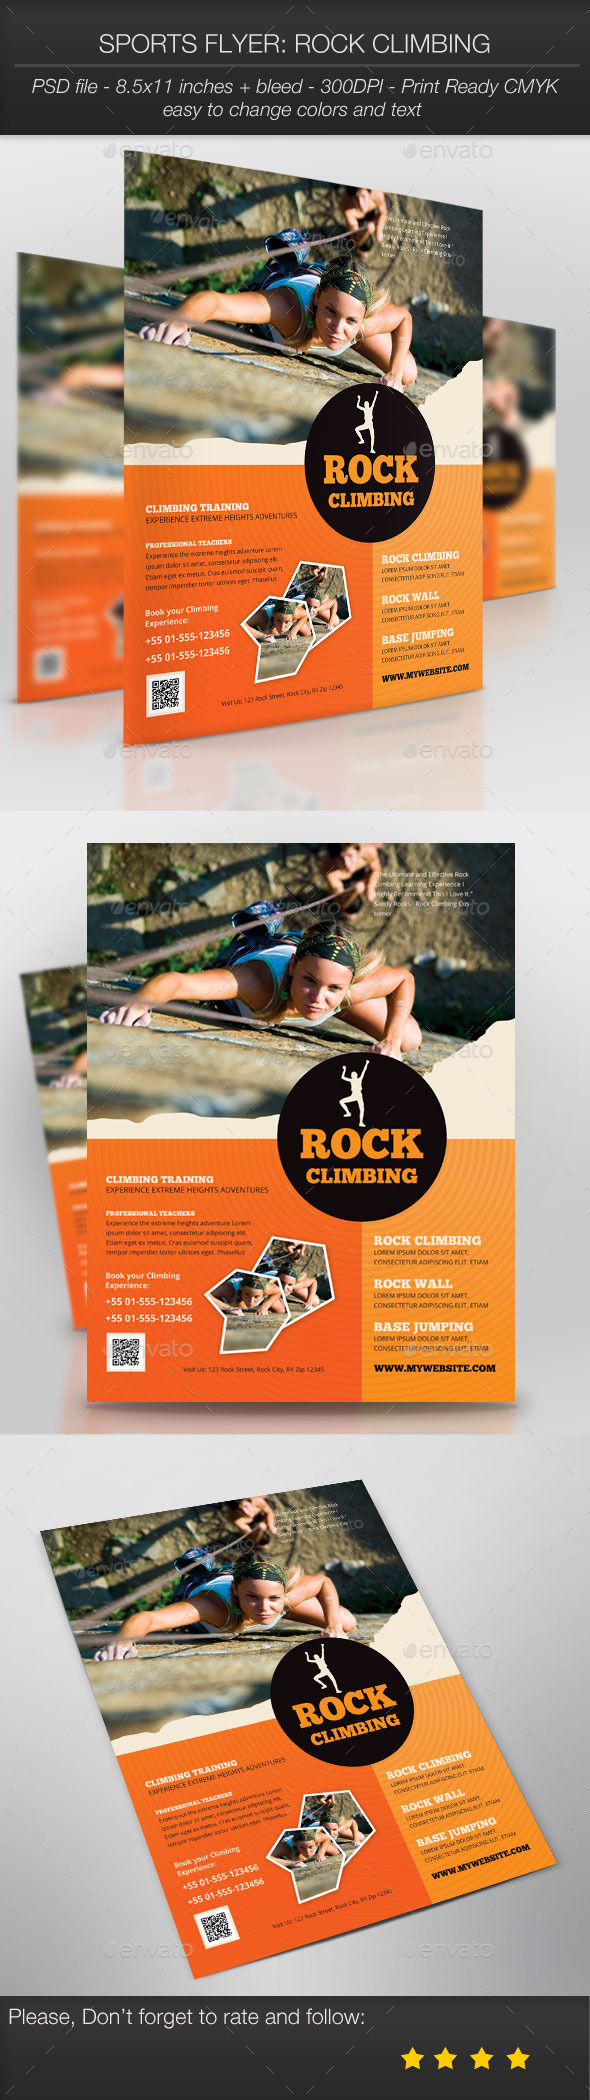 Sports Flyer: Rock Climbing - Sports Events